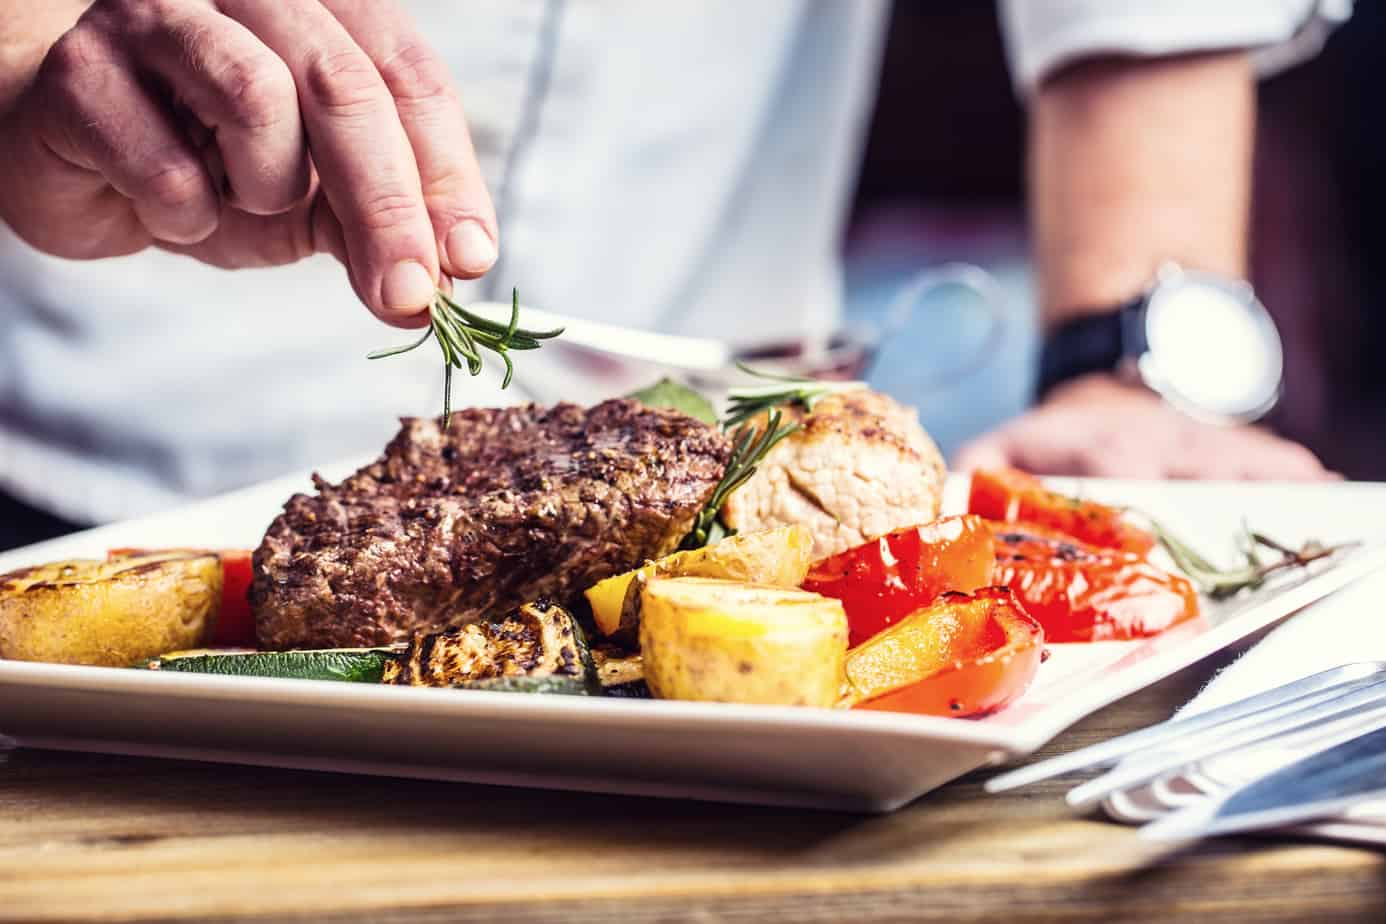 Chef In Hotel Or Restaurant Kitchen Cooking Only Hands Prepared Beef Steak With Vegetable Decoration 81415061